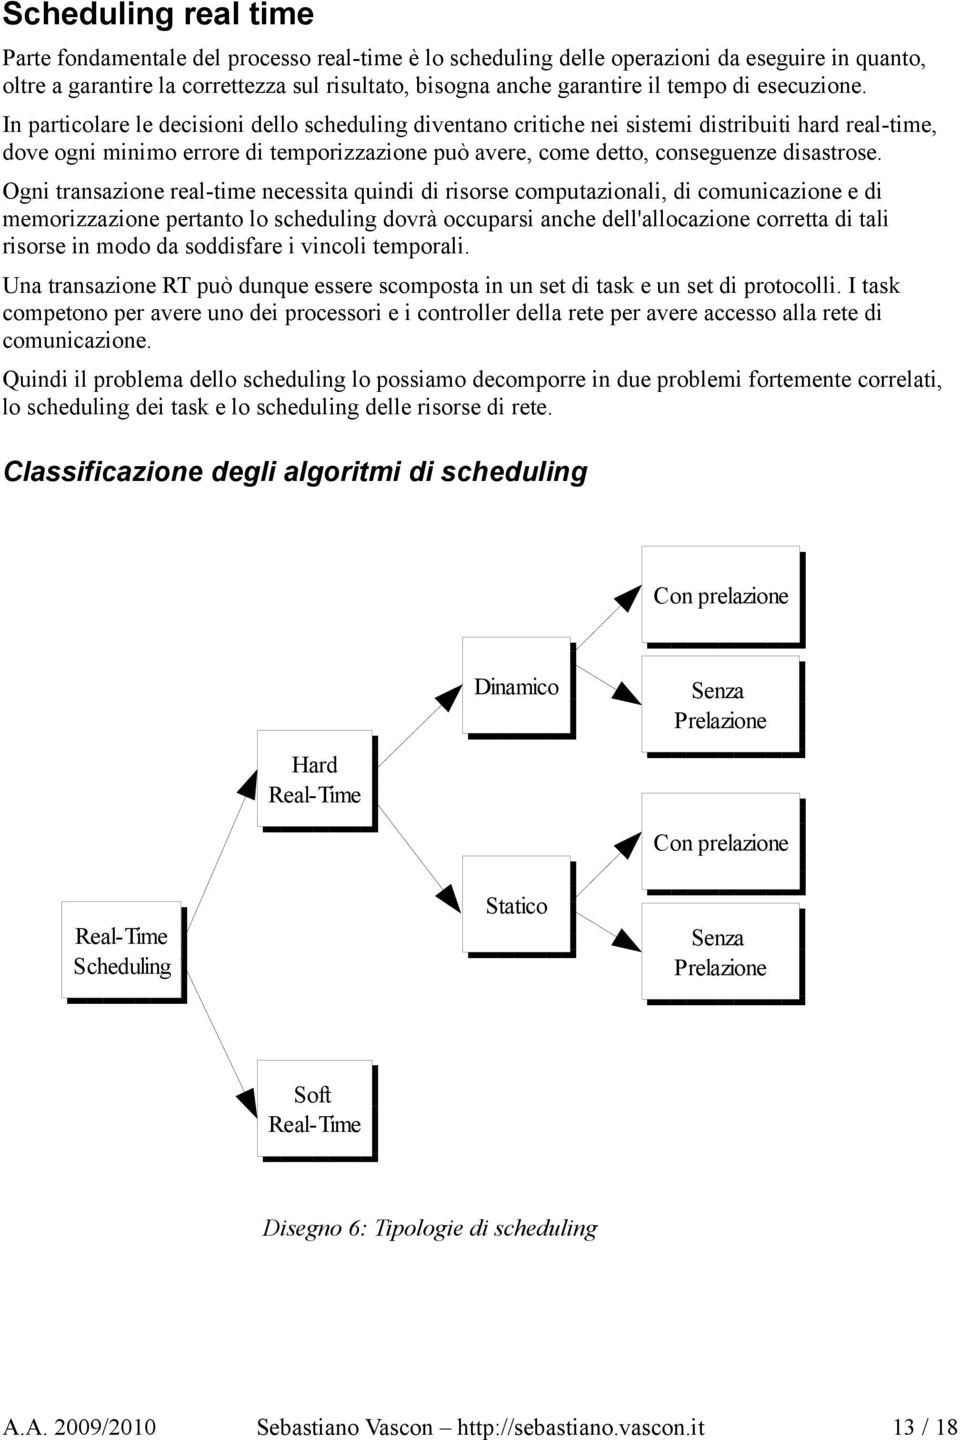 In particolare le decisioni dello scheduling diventano critiche nei sistemi distribuiti hard real-time, dove ogni minimo errore di temporizzazione può avere, come detto, conseguenze disastrose.